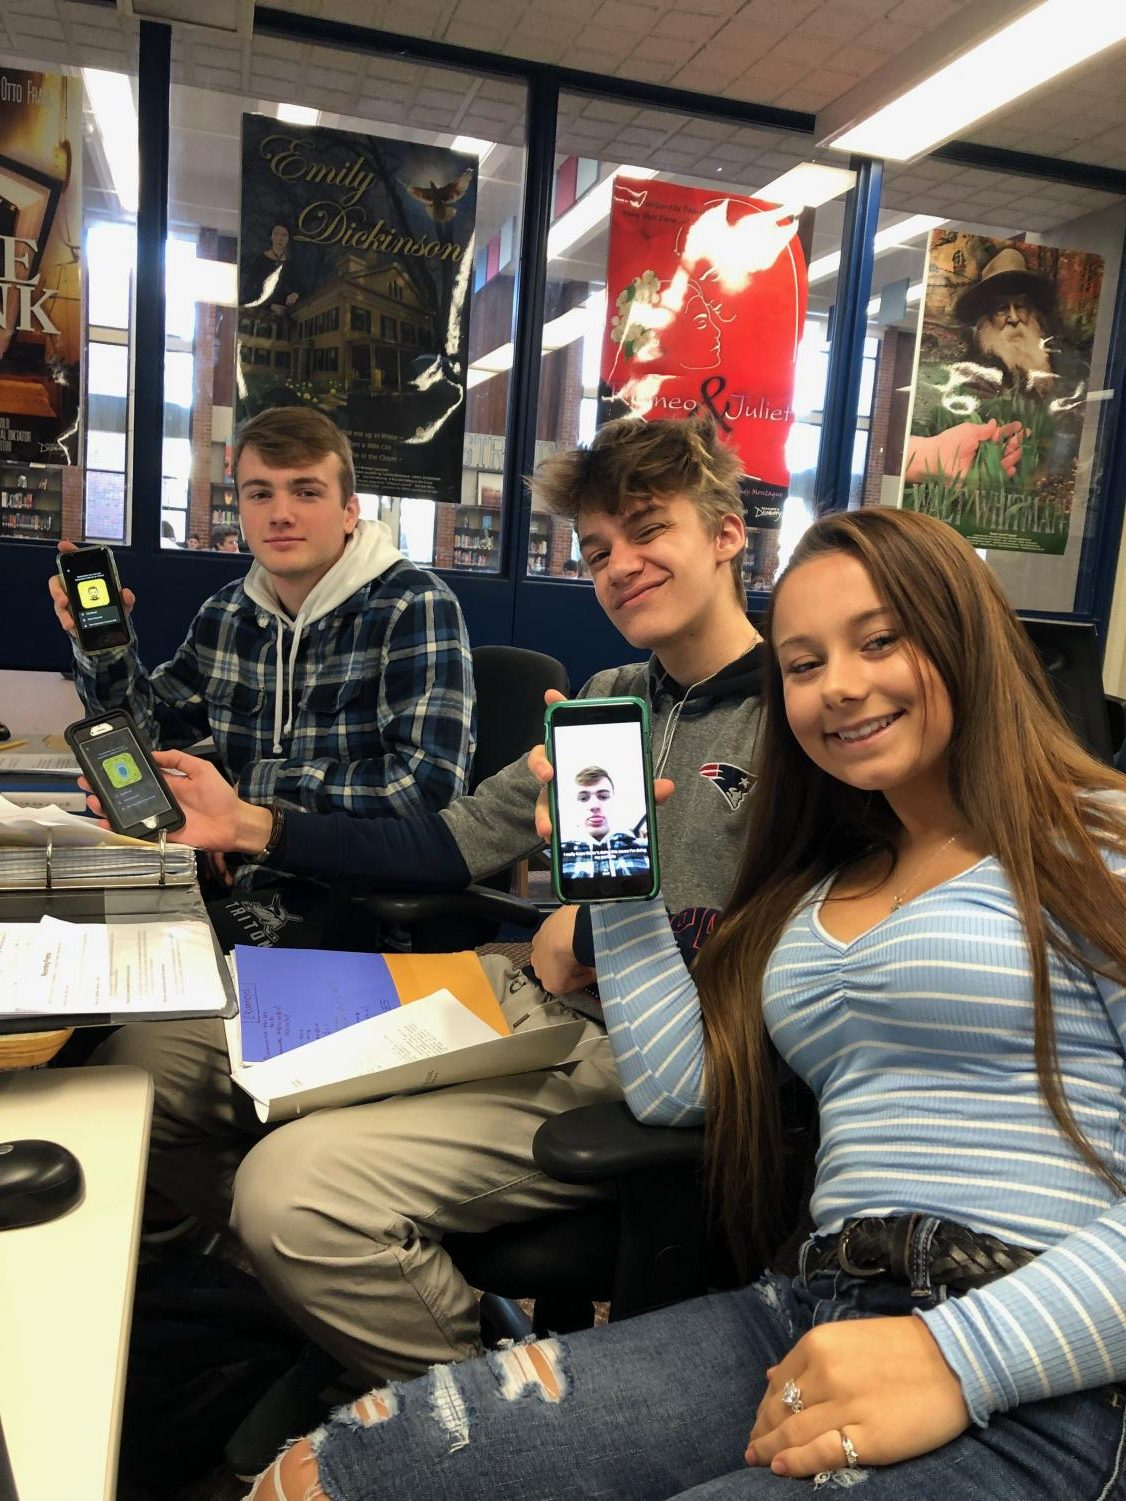 Sophia Agrella, Kiefer Callewaert, and Connor Kohan using Snapchat